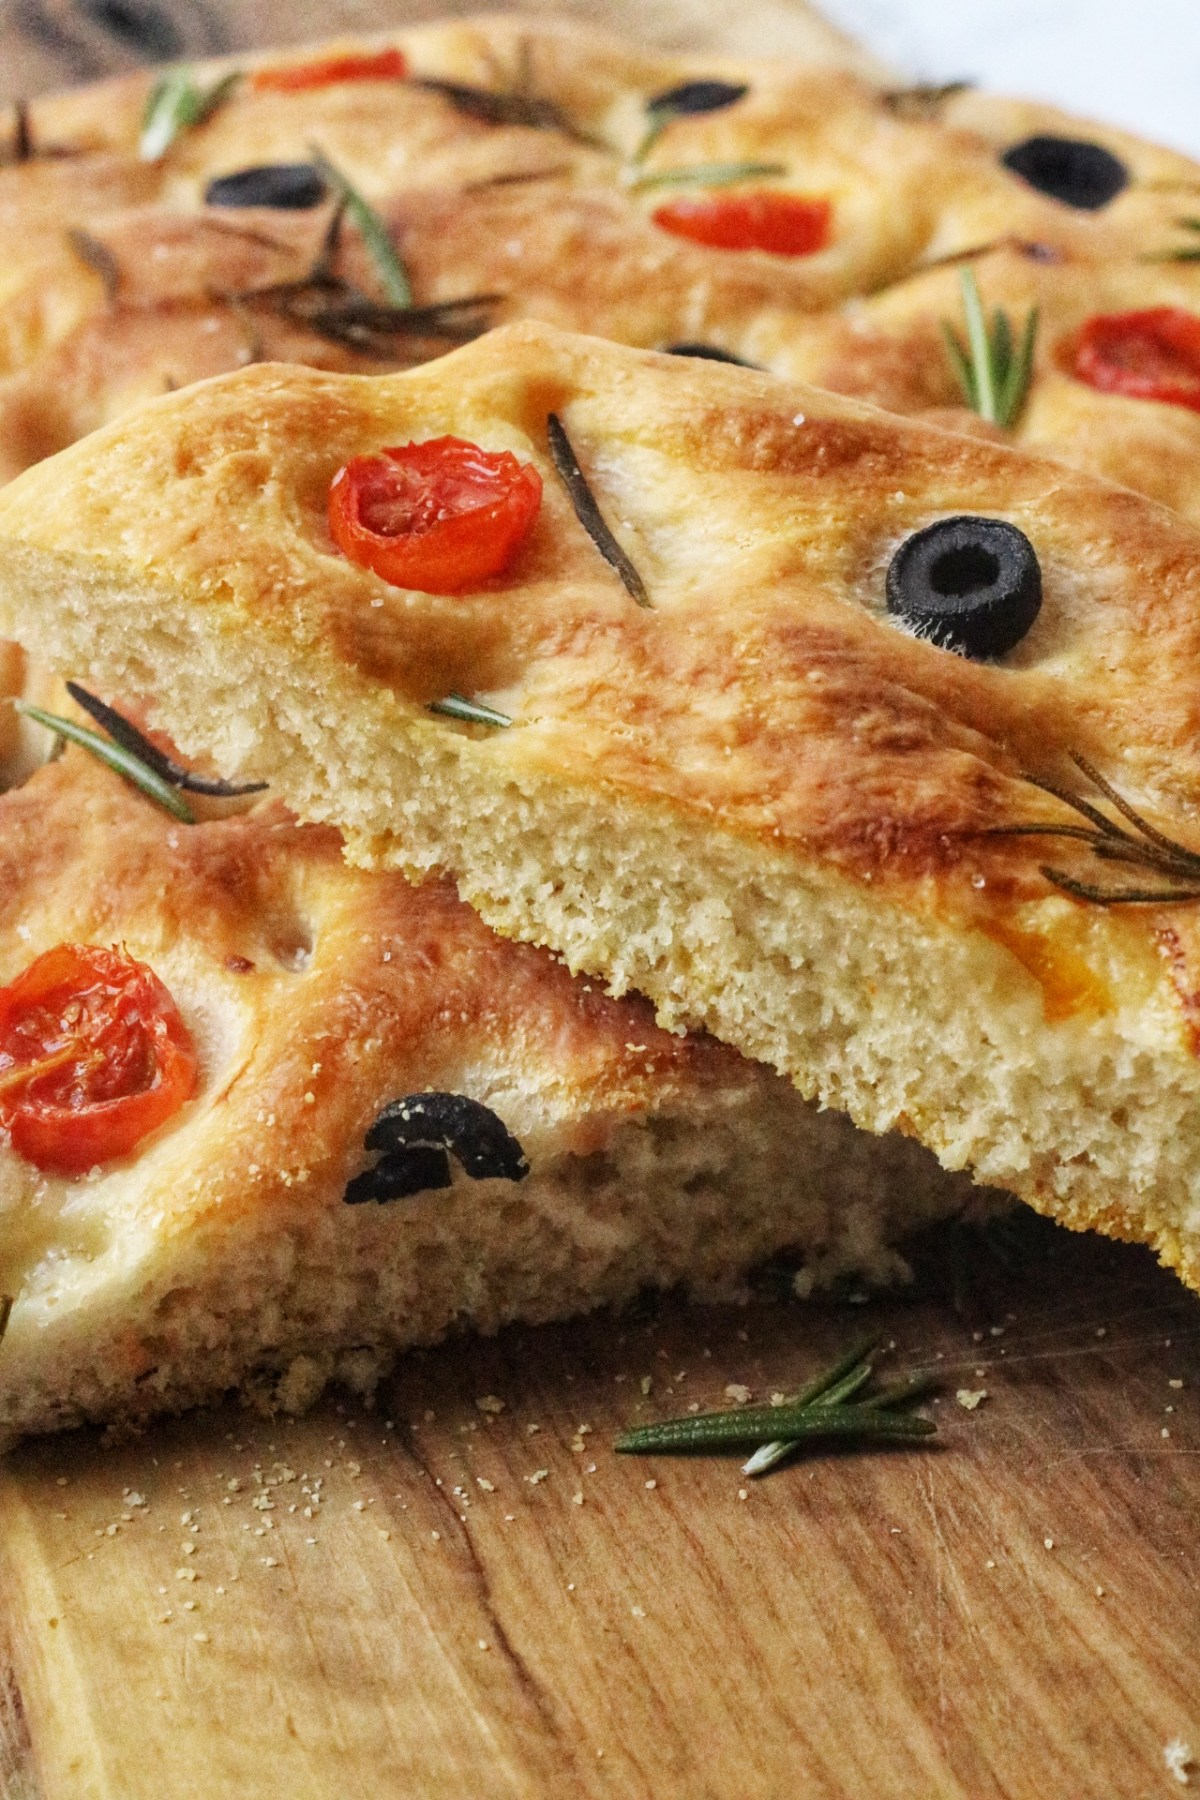 This classic focaccia recipe is flavoured with salty black olives, sweet cherry tomatoes and earthy rosemary